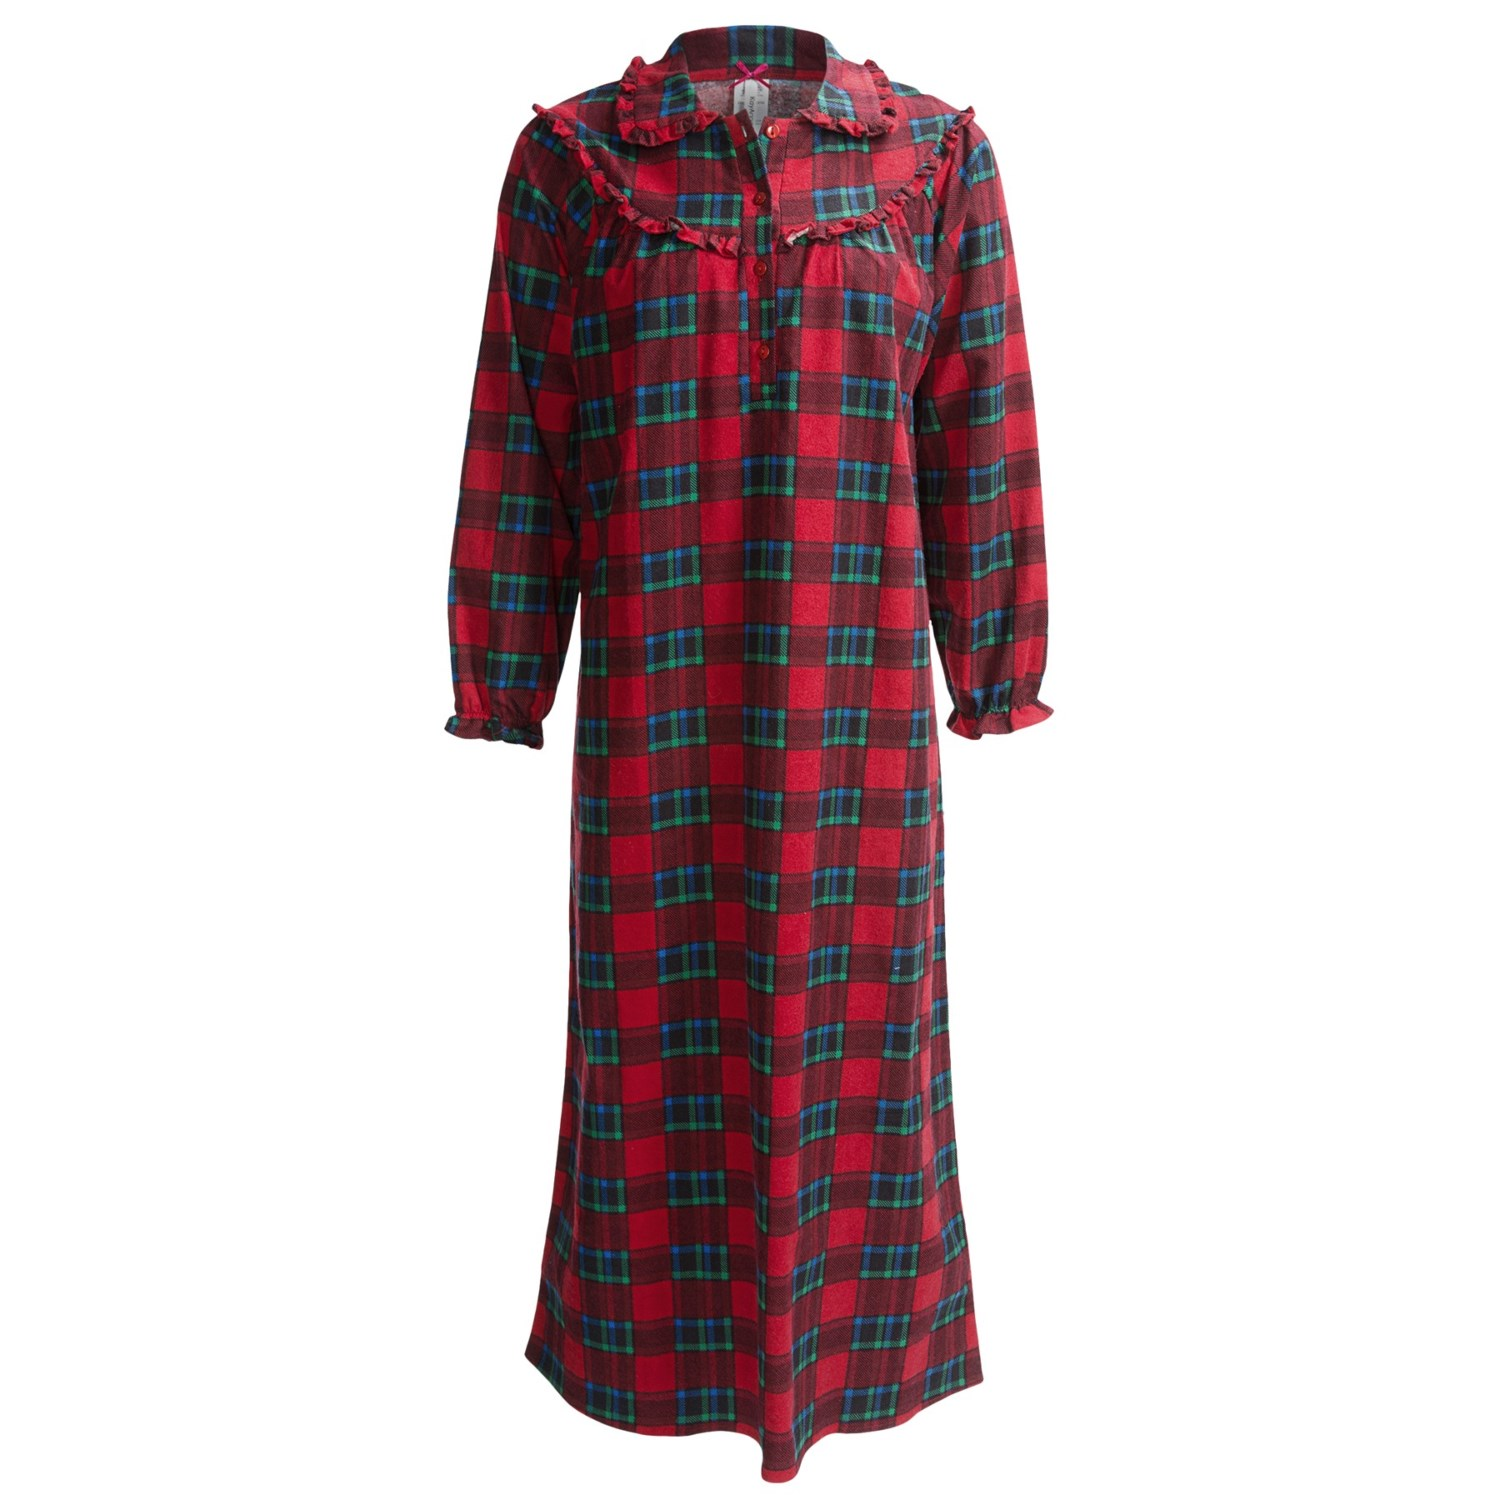 Women's Cotton Flannel Nightgown - Long Flannel Gowns for Women, Blue $ 49 99 Prime. out of 5 stars 6. Ekouaer. Women's Flannel Nightgowns Comfy Long Sleeve Women's Loungewear Plus Size $ 19 out of 5 stars 2. SYTX-women clothes. SYTX Womens Thicken Long Sleeve Print Fleece Flannel Warm Long Nightgown Homewwar.